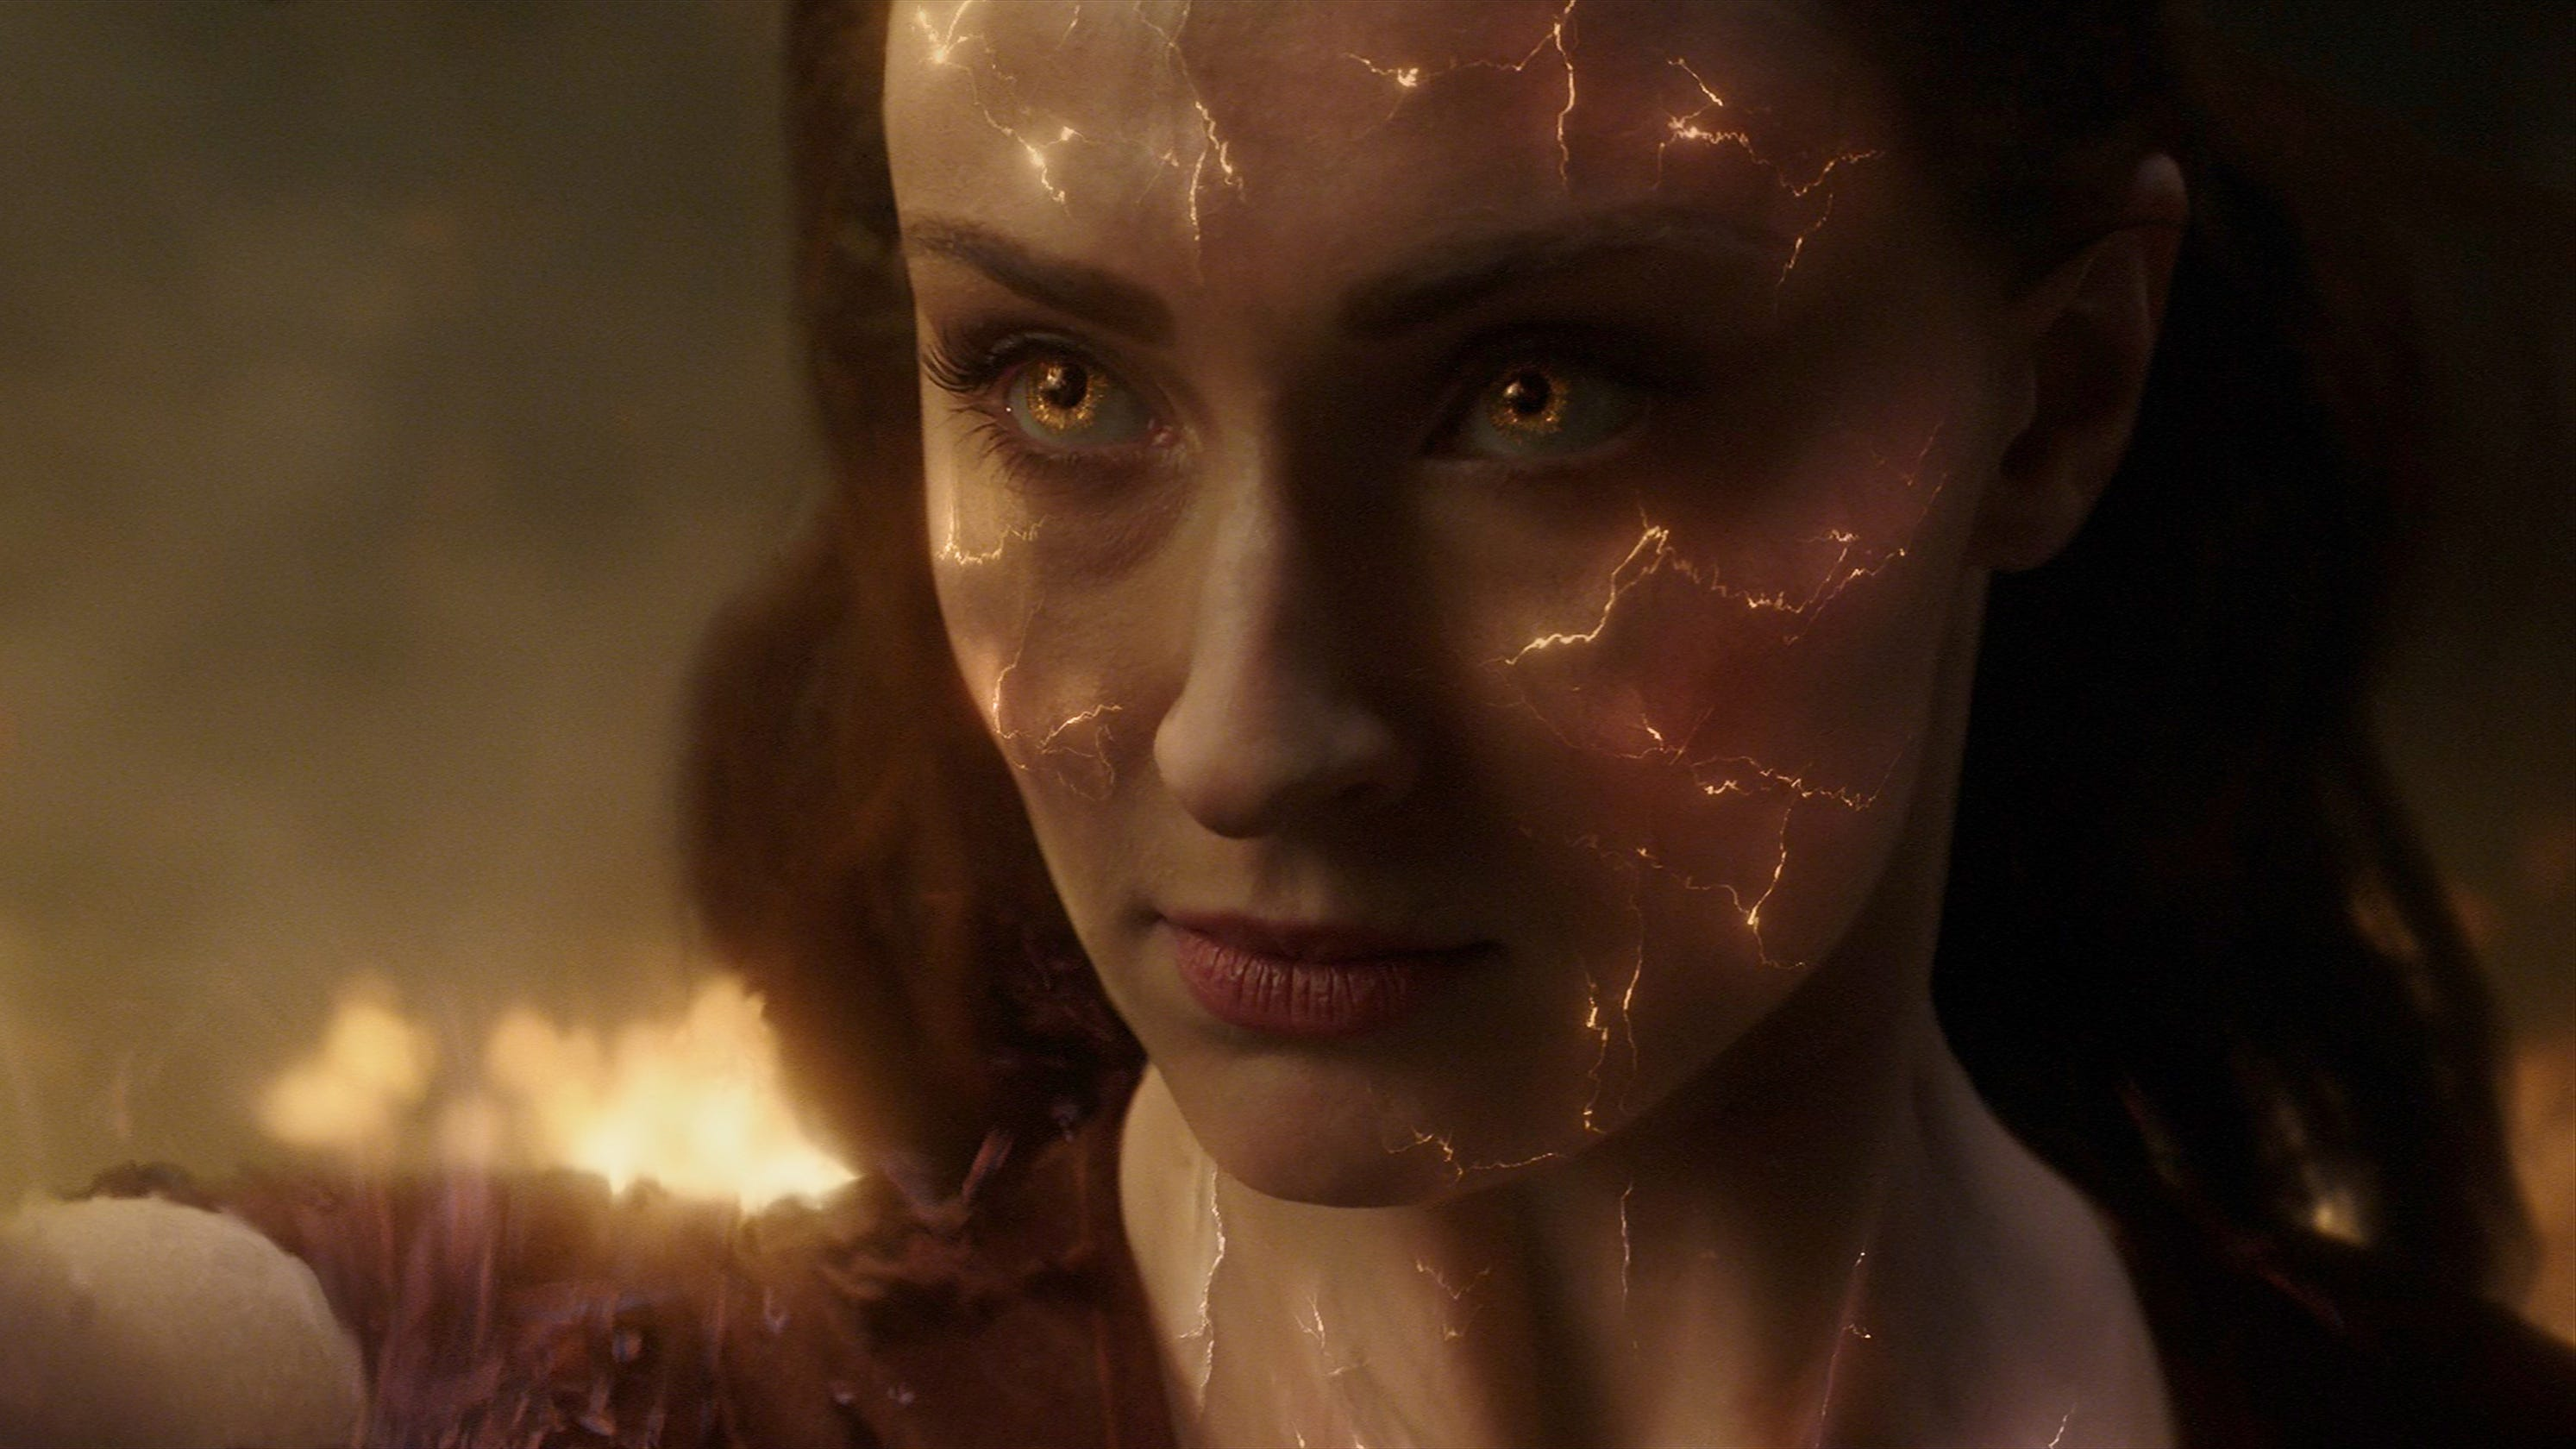 All the winners and losers in summer 2019 movies, from Brad Pitt to 'Dark Phoenix'